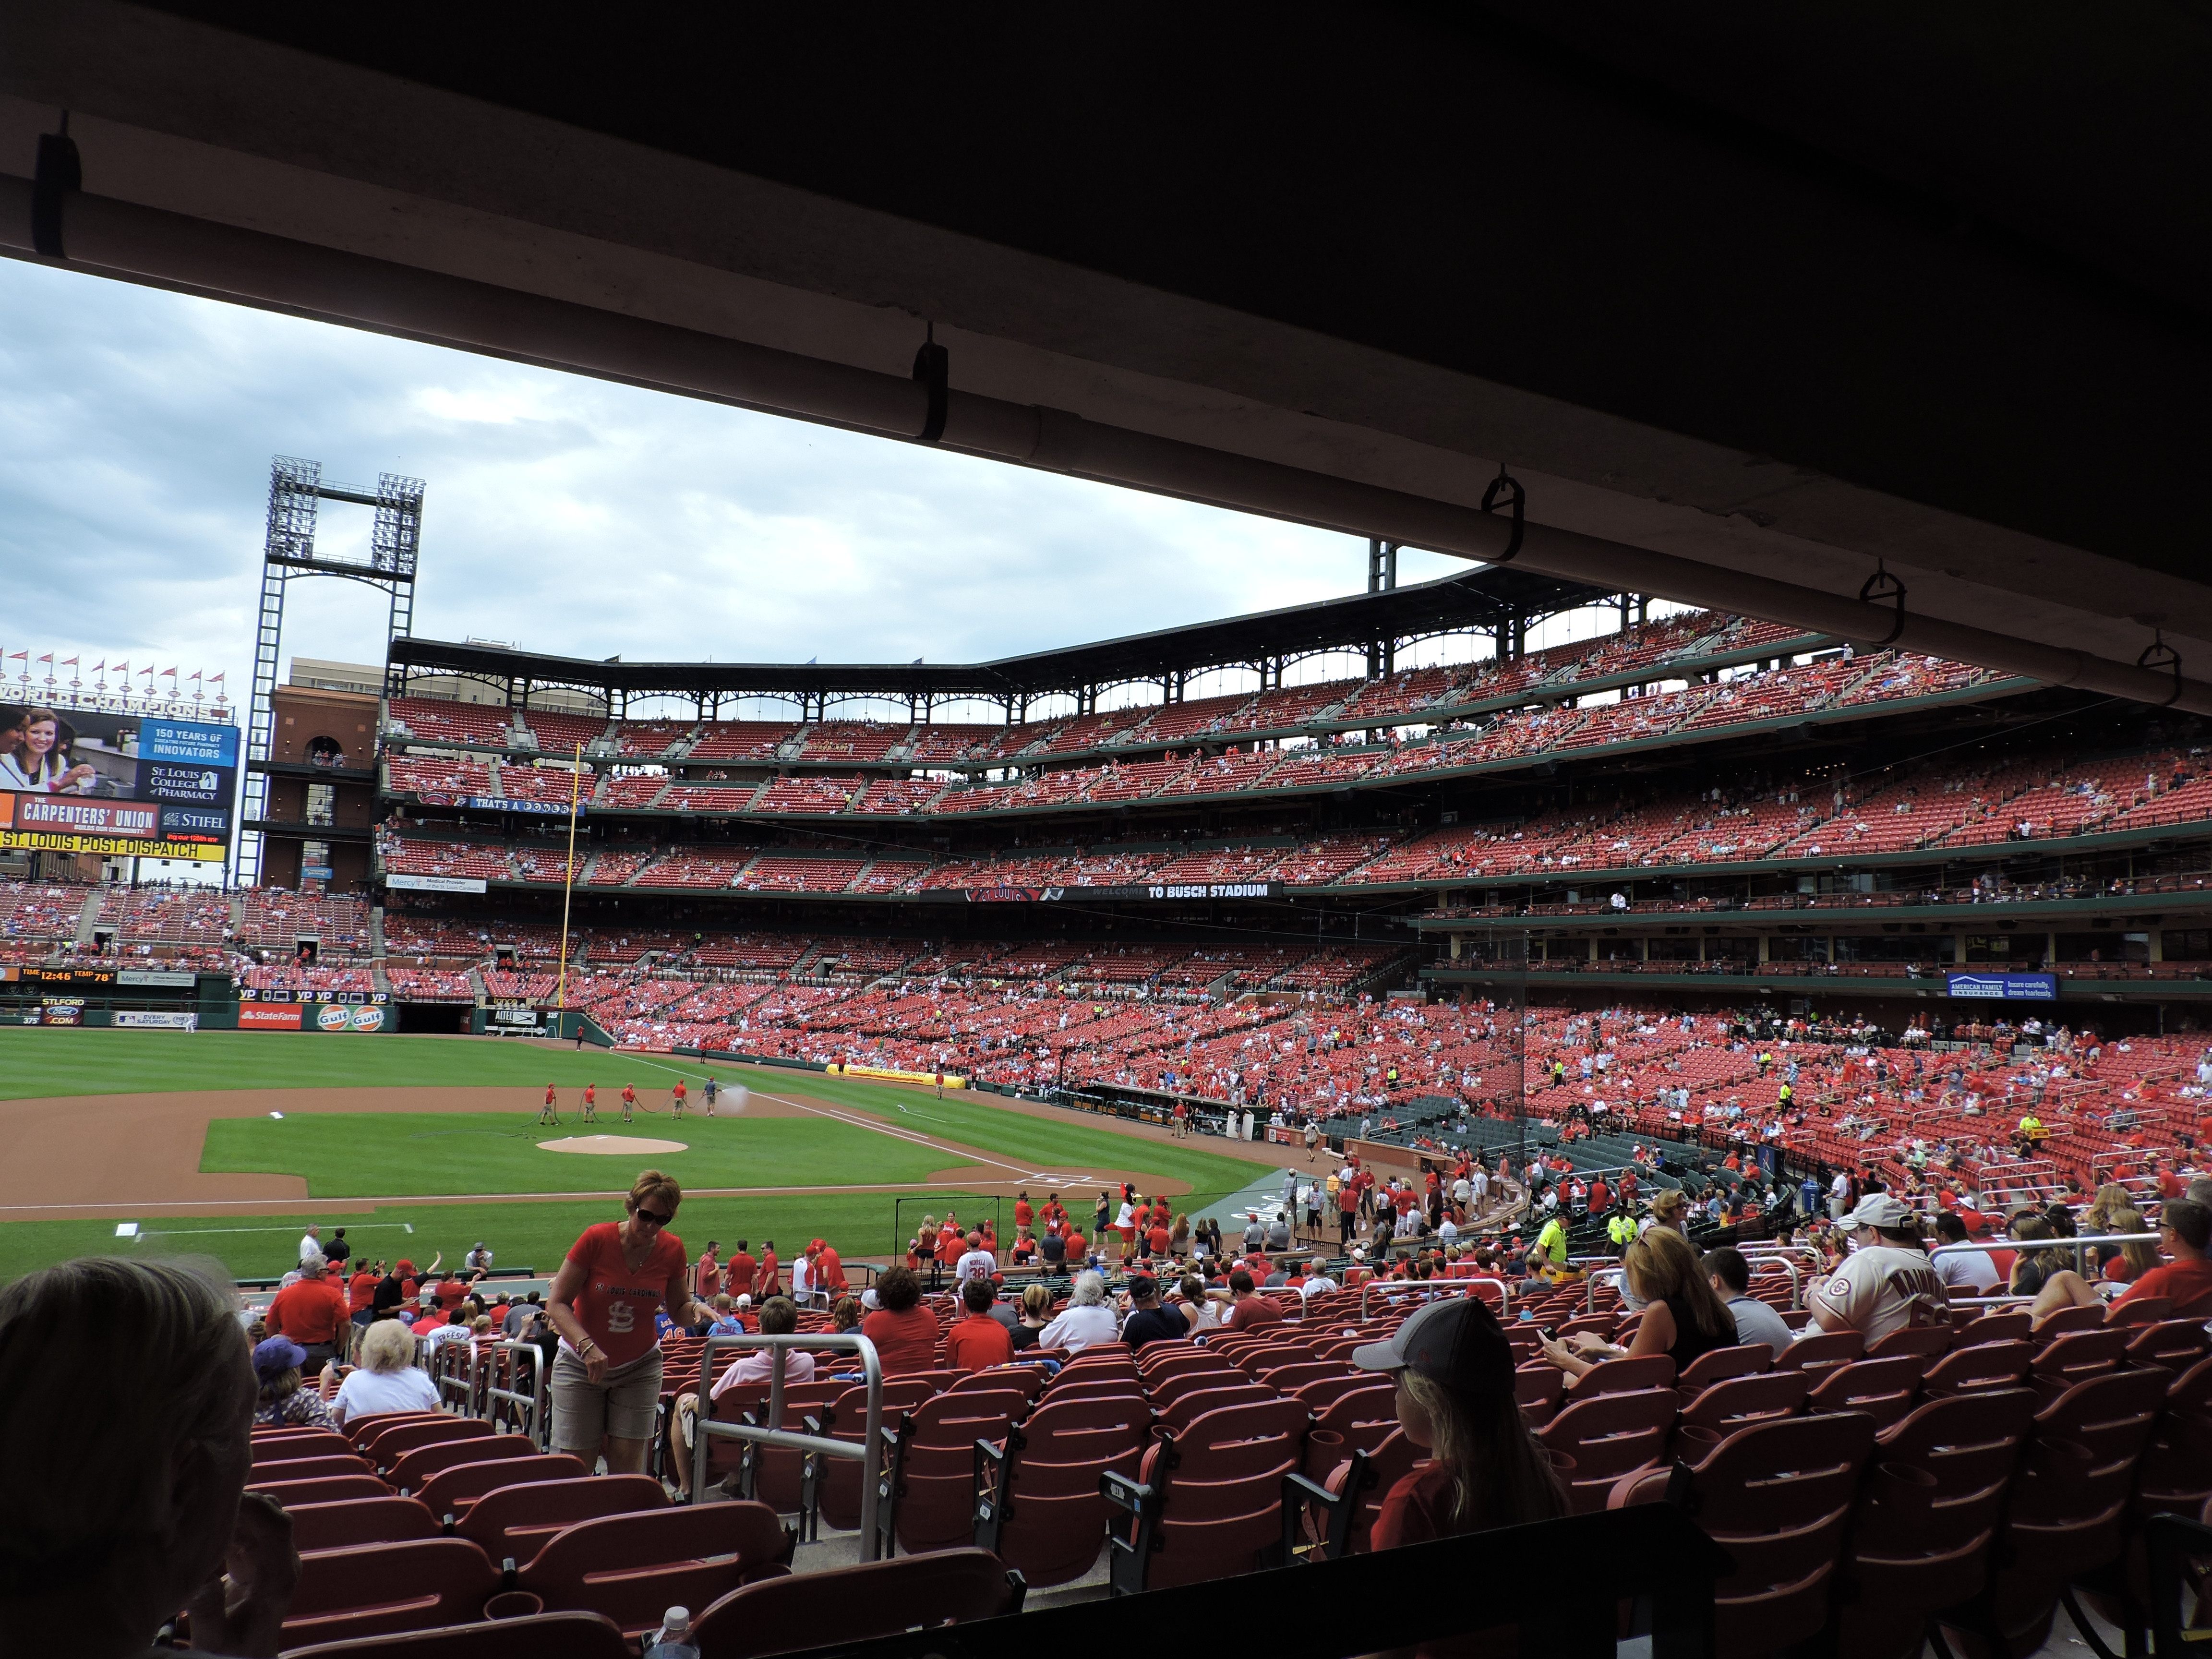 The Cardinals Dont Have Standing Room Only In Bottom Section And They Easily Accessible Counters Open To All On A First